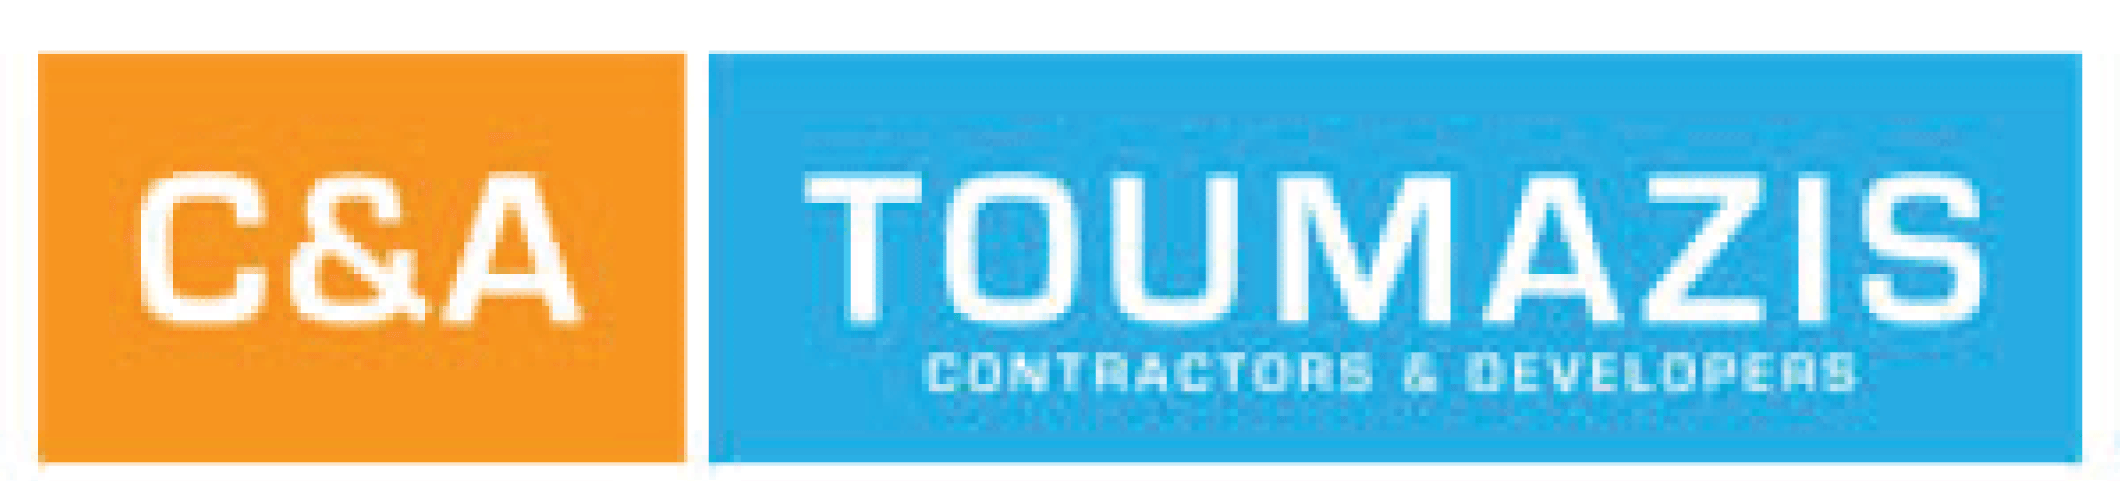 Toumazis Contructors and Developers